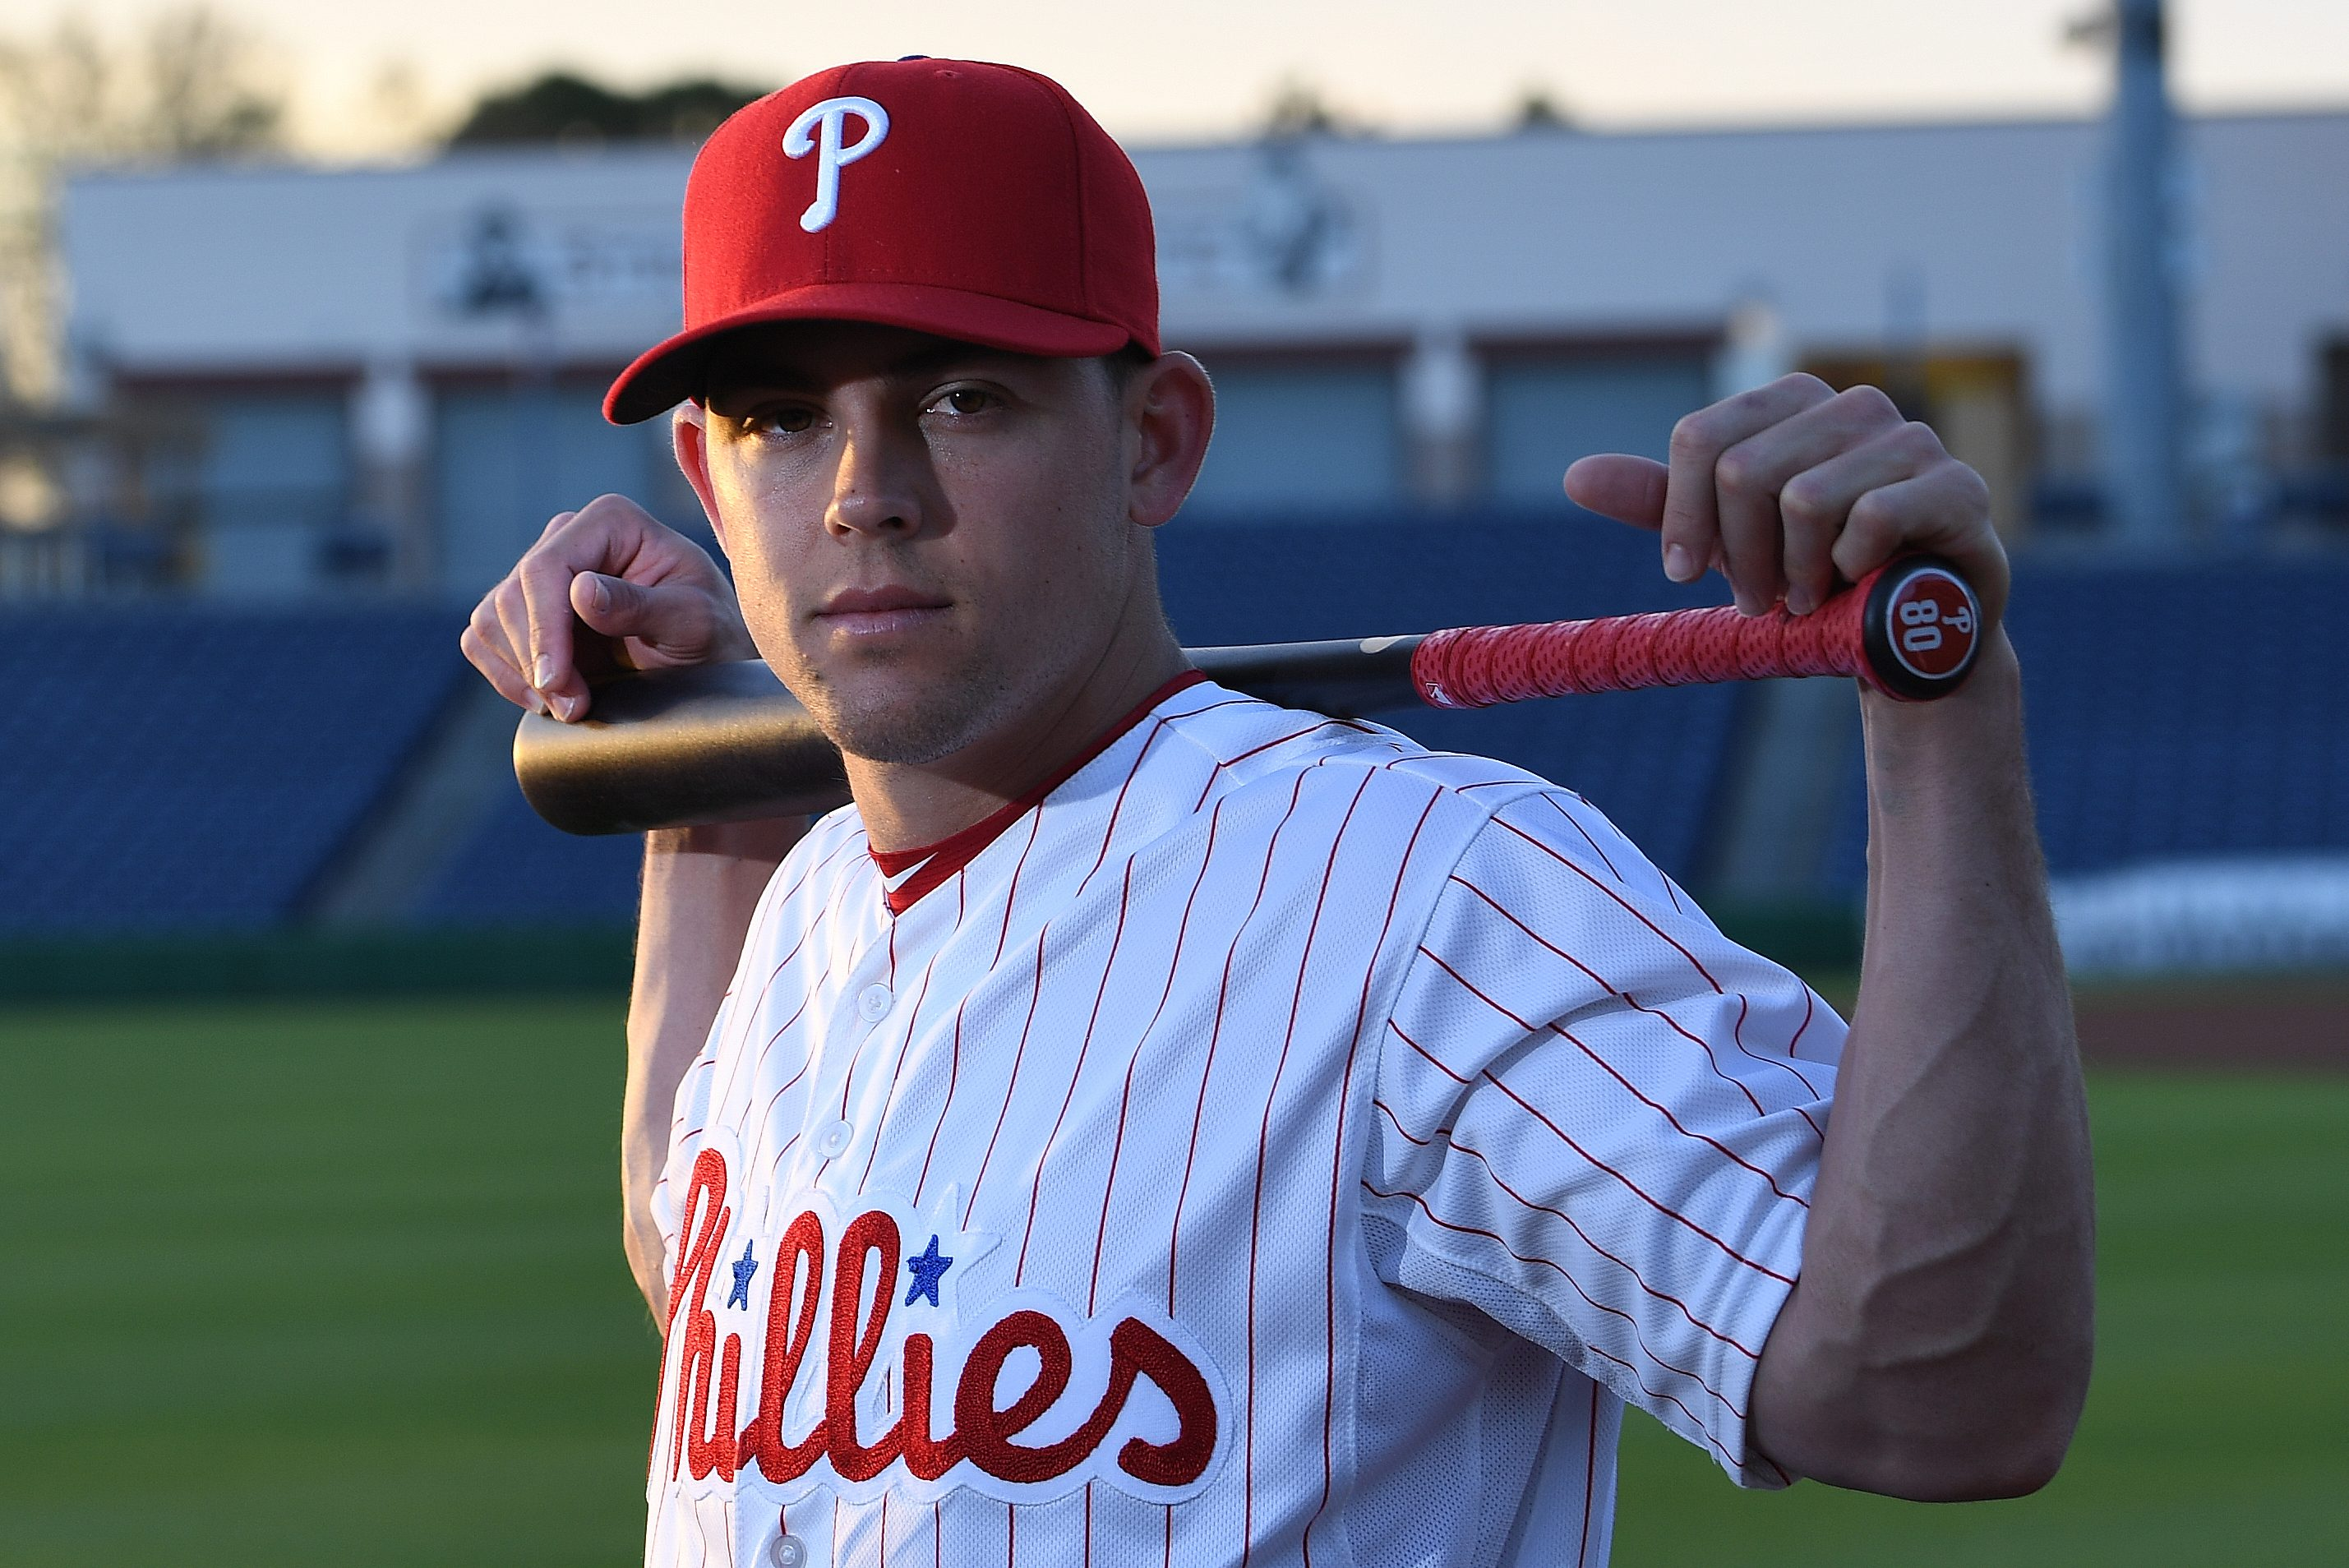 Scott Kingery is going to start the season at Triple-A ... and he´s OK with that. (Though the veins in his left arm suggest otherwise.)